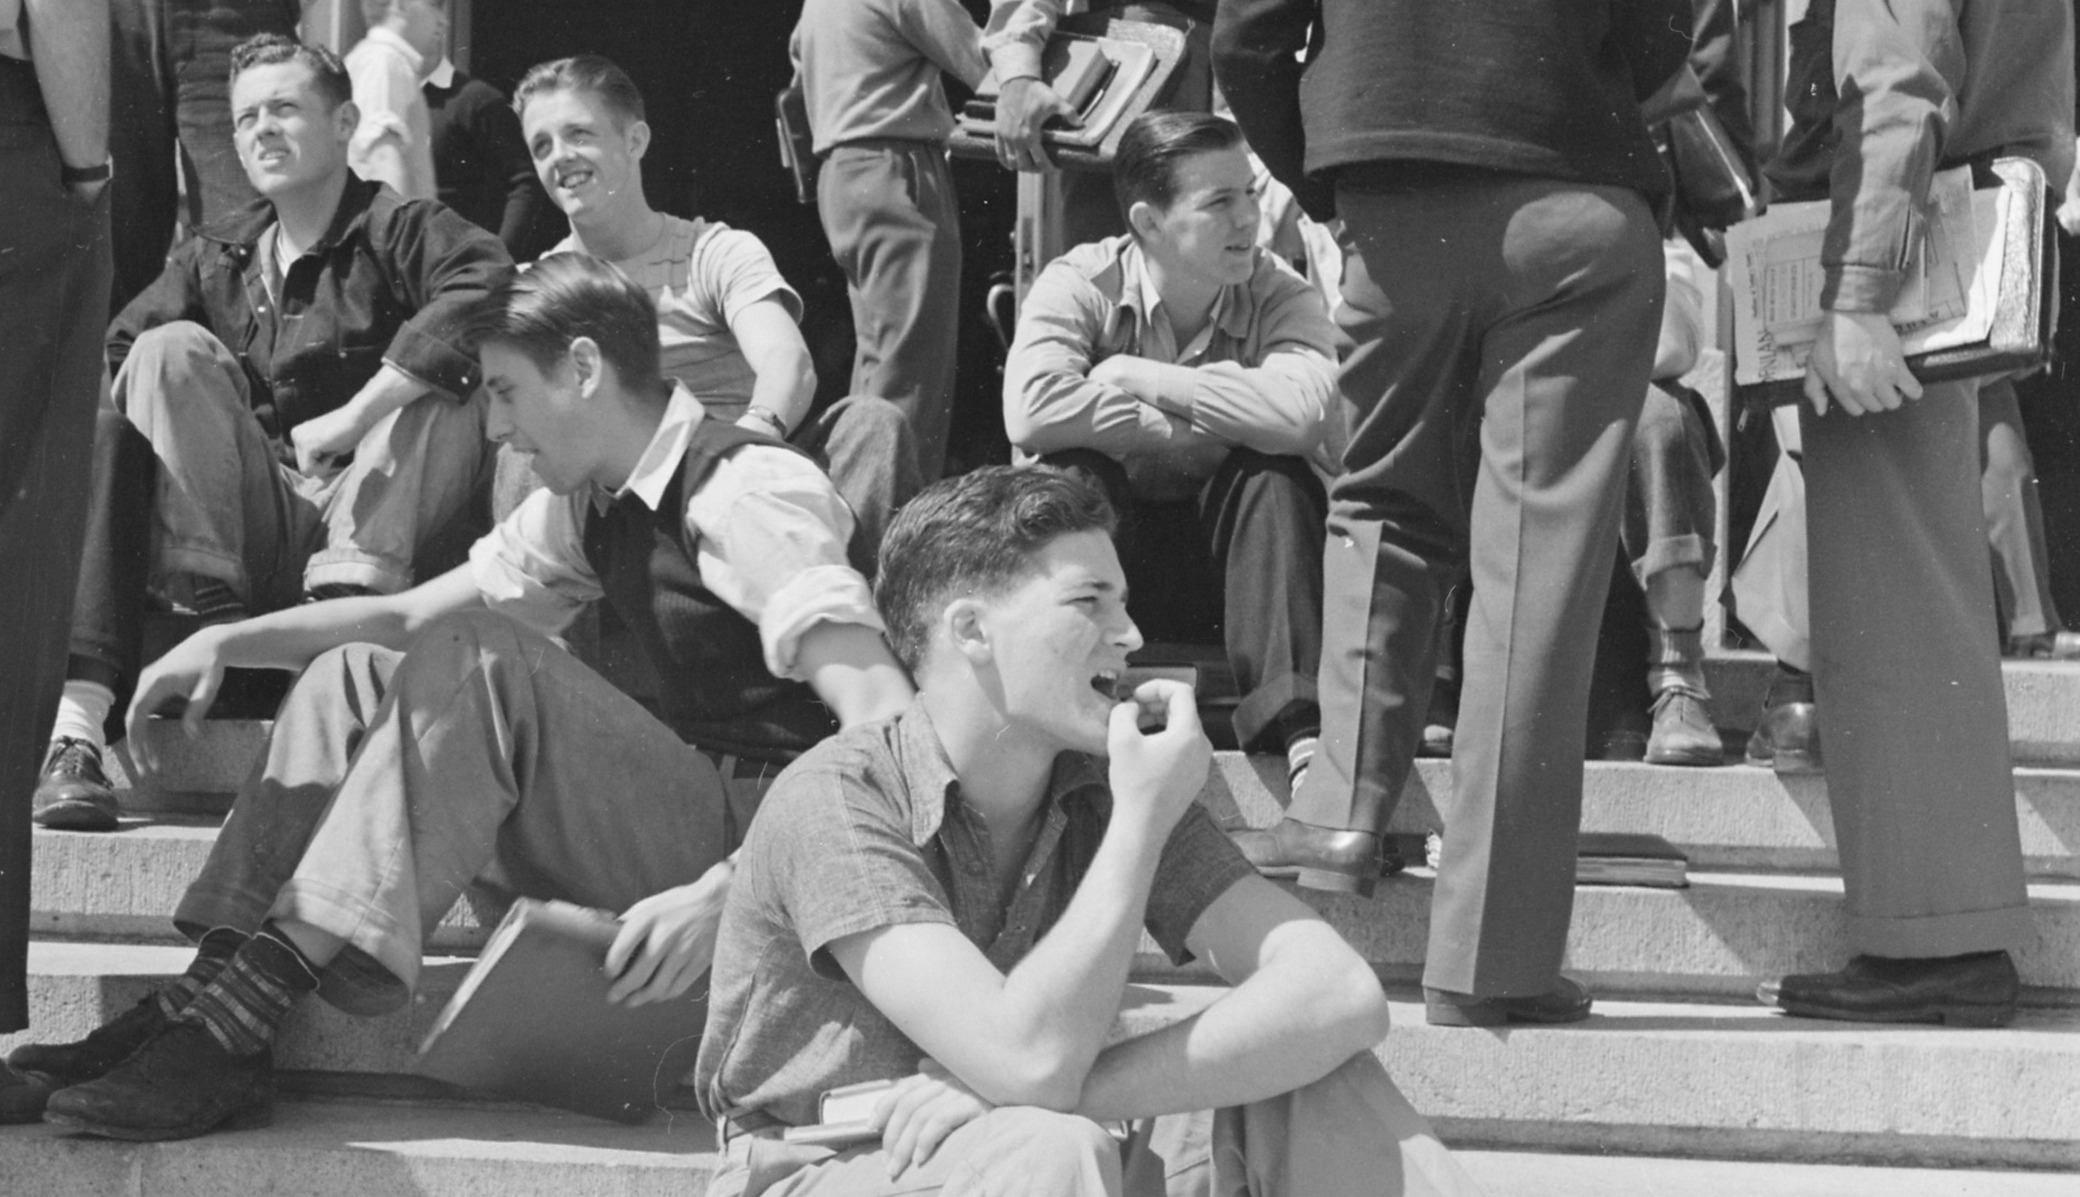 A black and white photo of male students sitting on the steps of Wheeler Hall on the University of California, Berkeley campus in 1940.